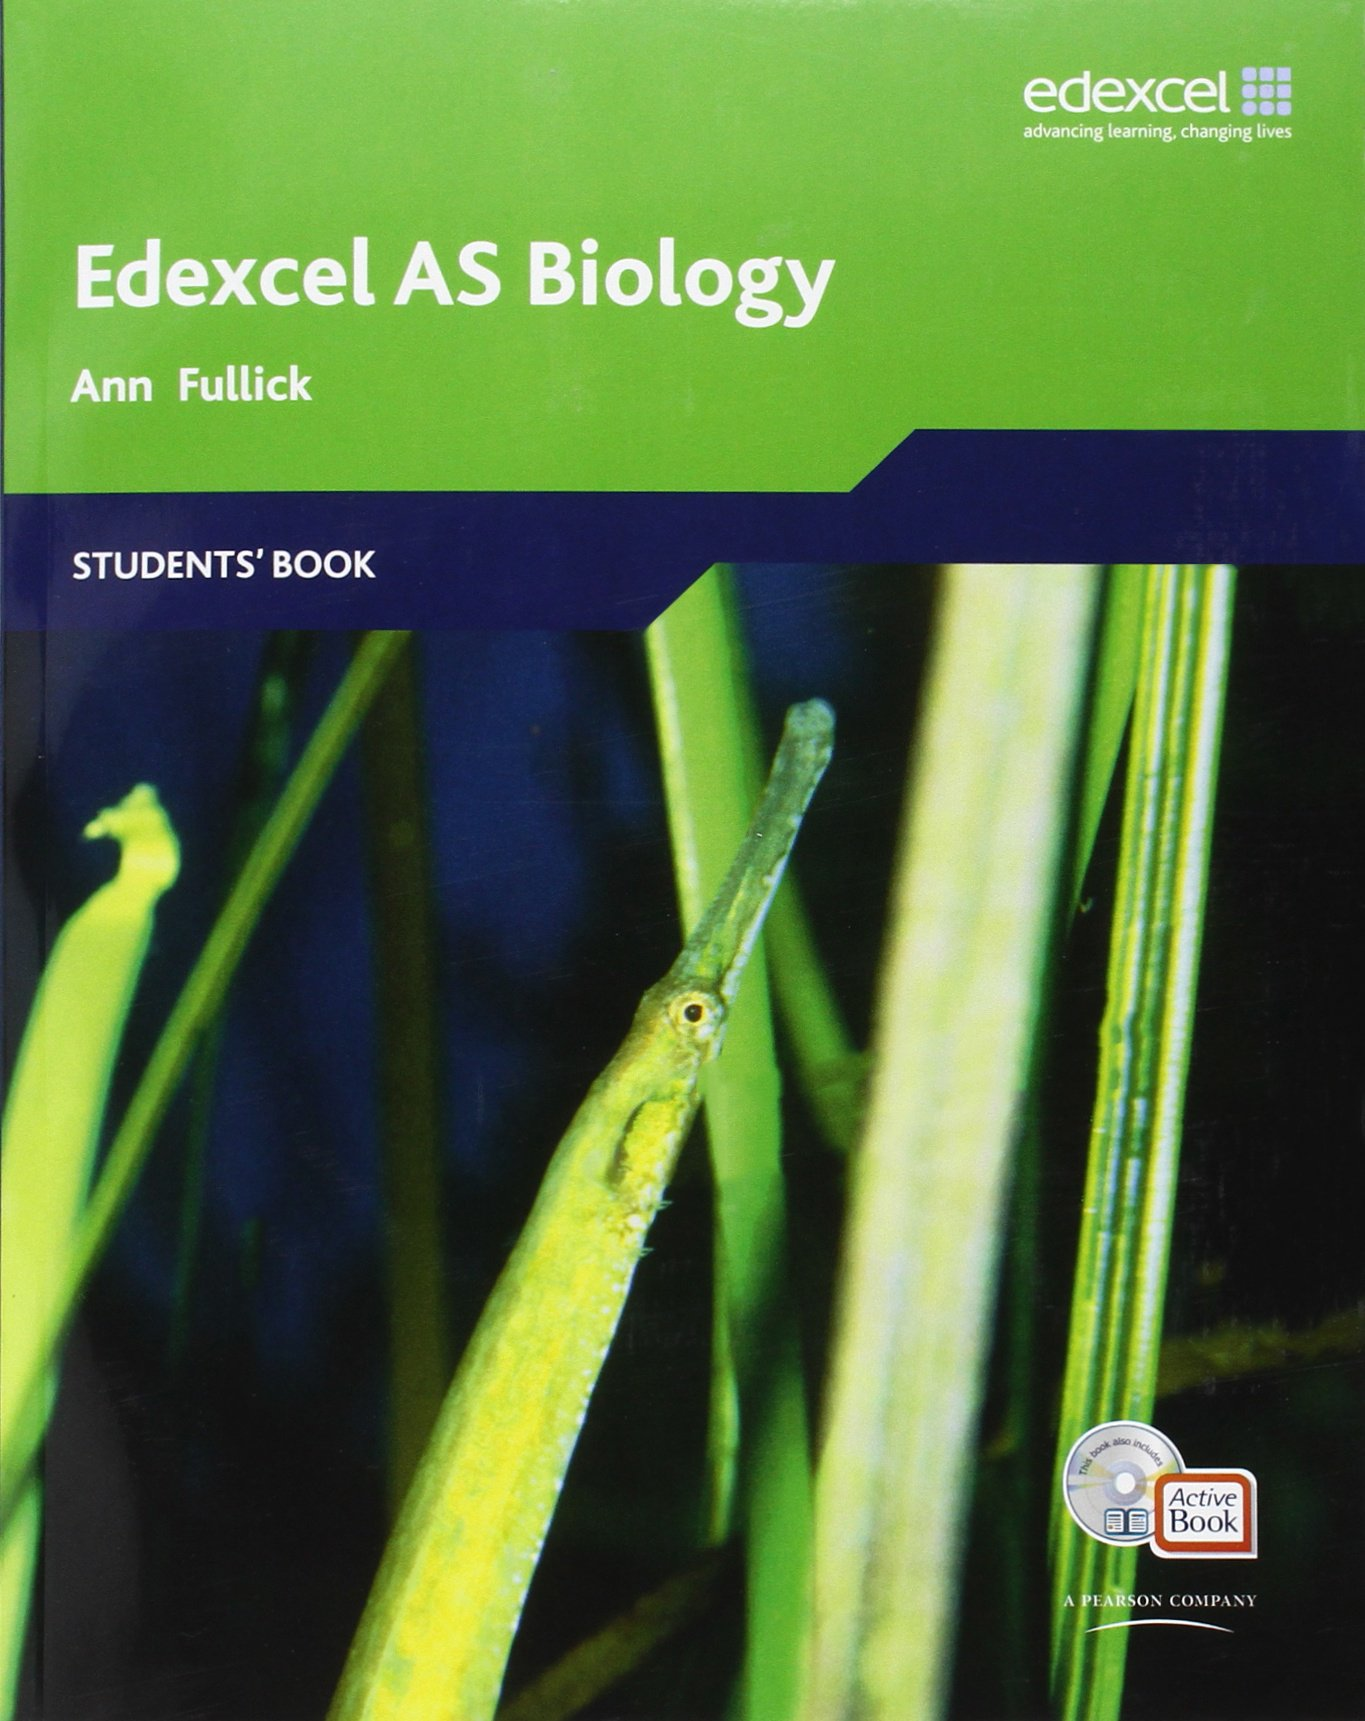 a s biology coursework Book preface this fourth edition of cambridge international as and a level biology provides everything that you need to do well in your cambridge international examinations as and a level biology (9700) courses.